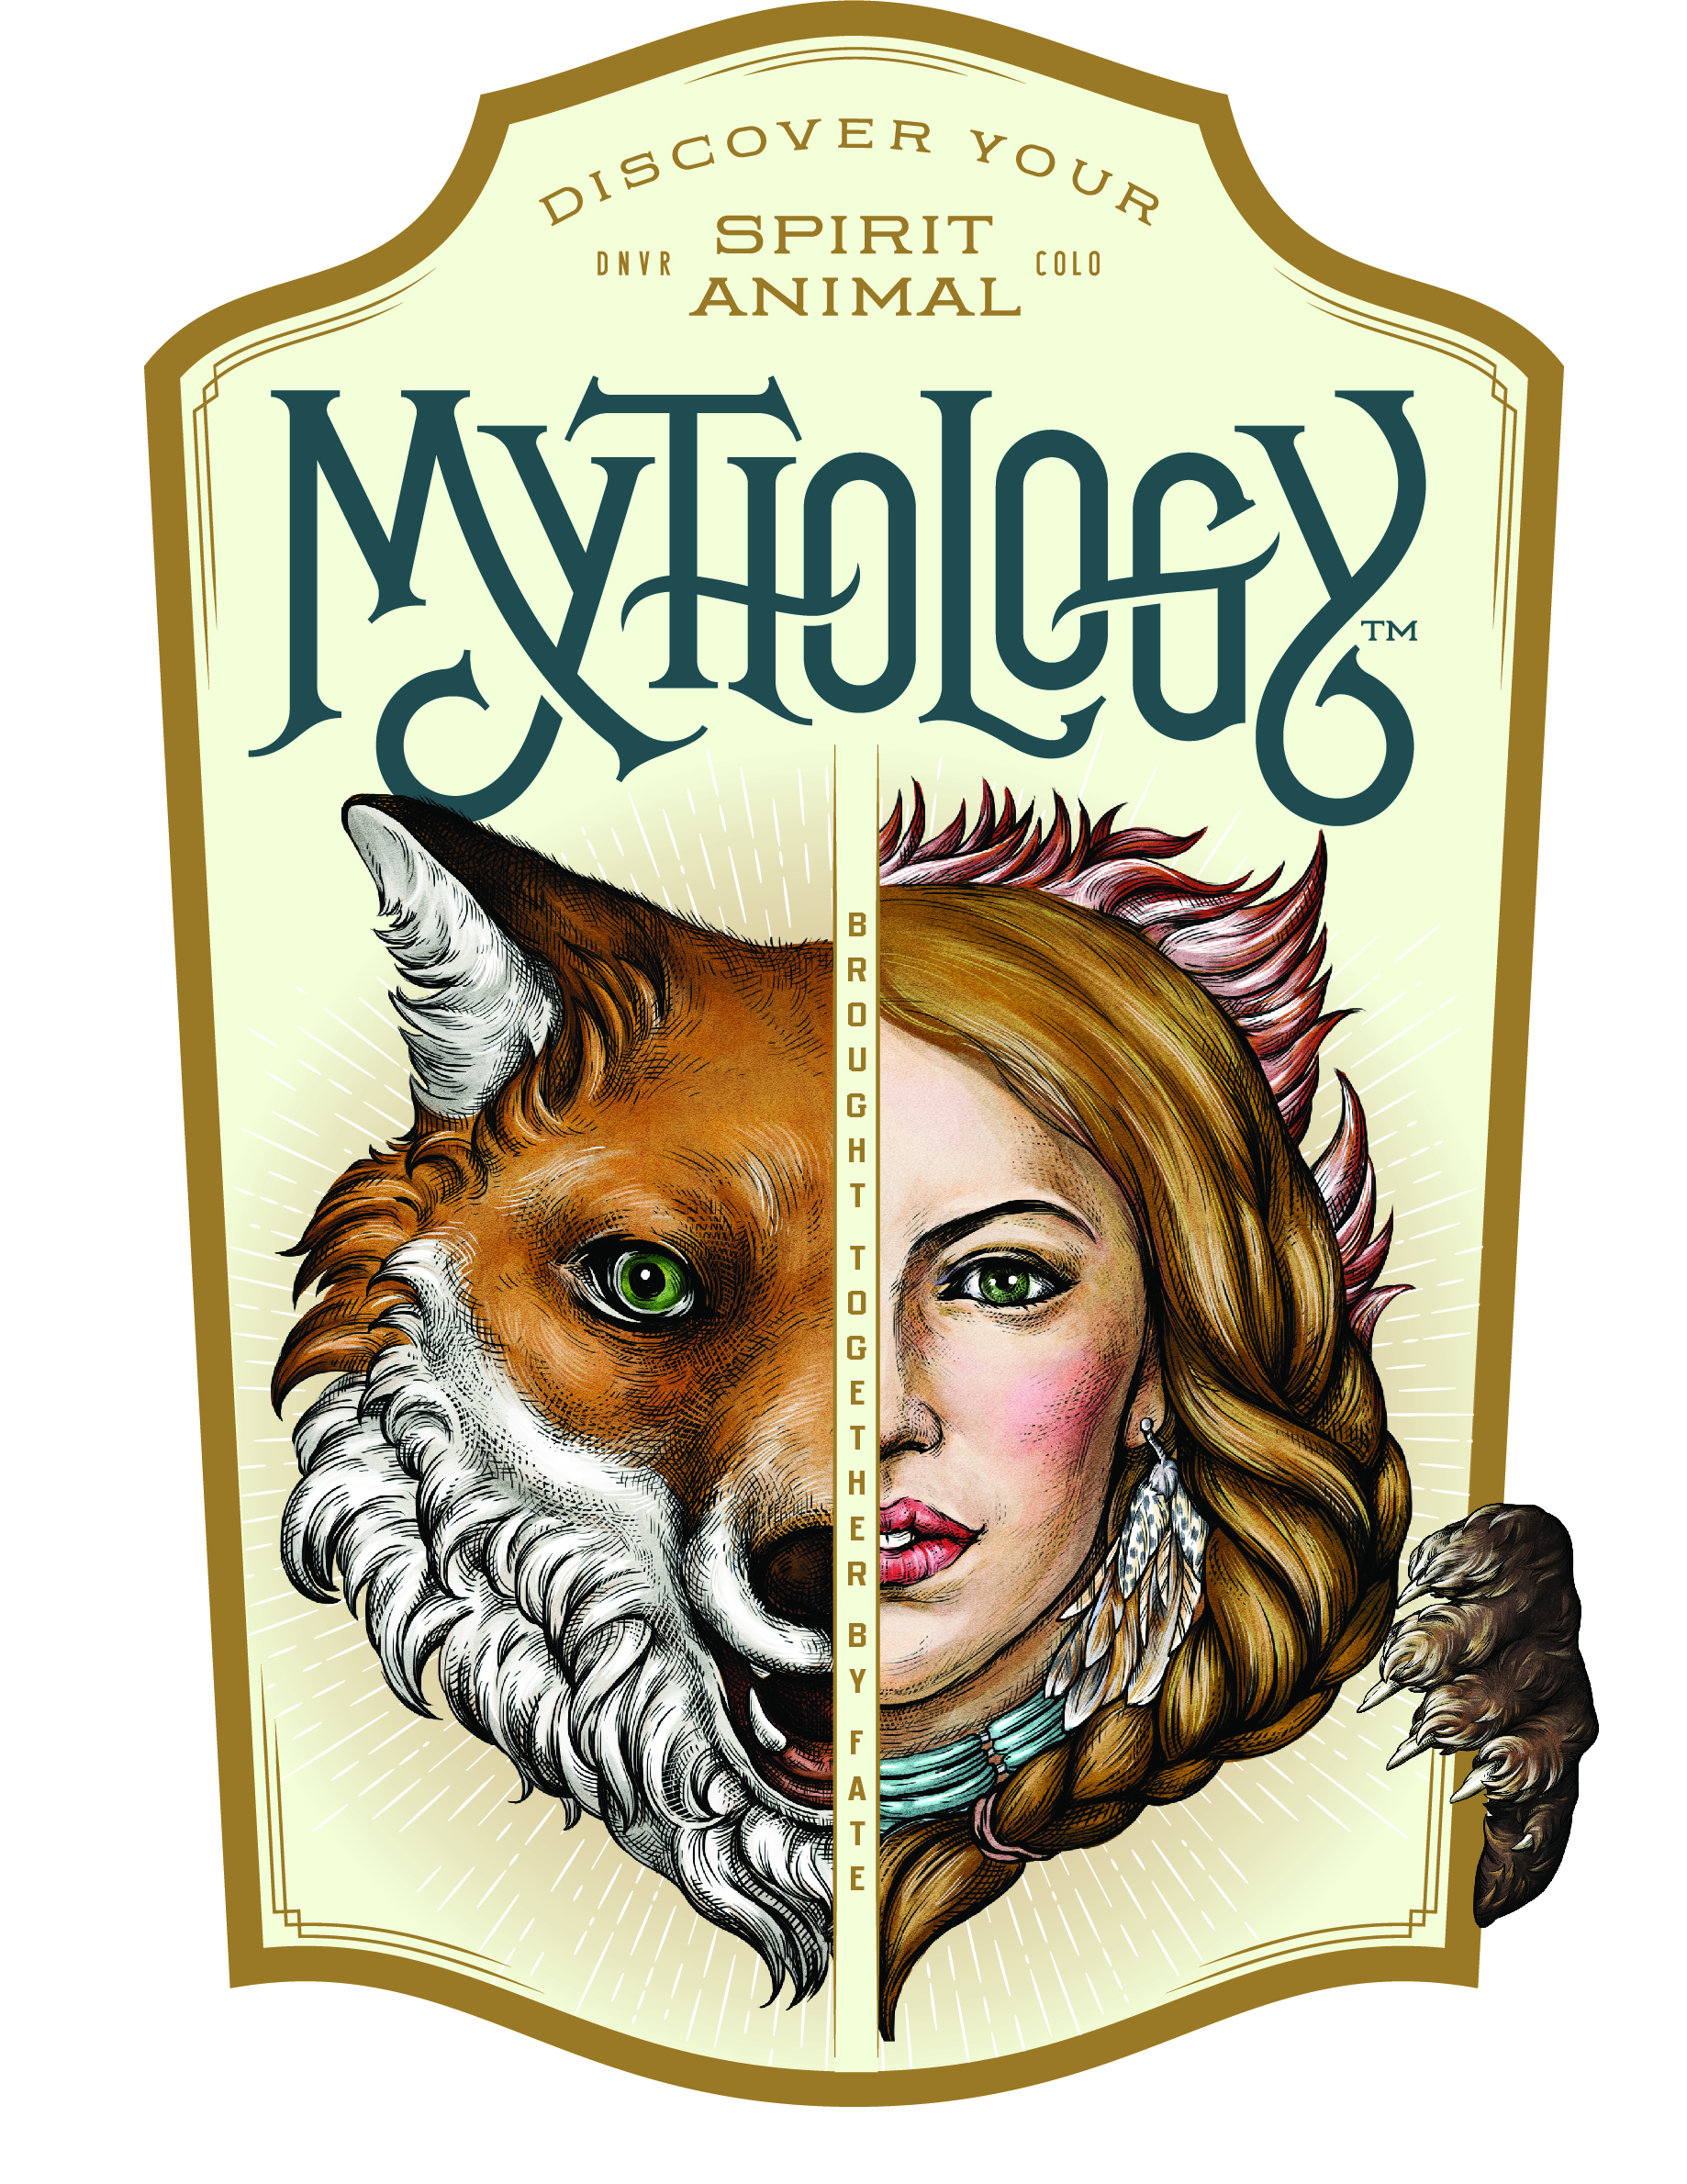 Copy of 04578-2.0 Mythology Chatter Wolf Packaging_Front Label ONLY.jpg